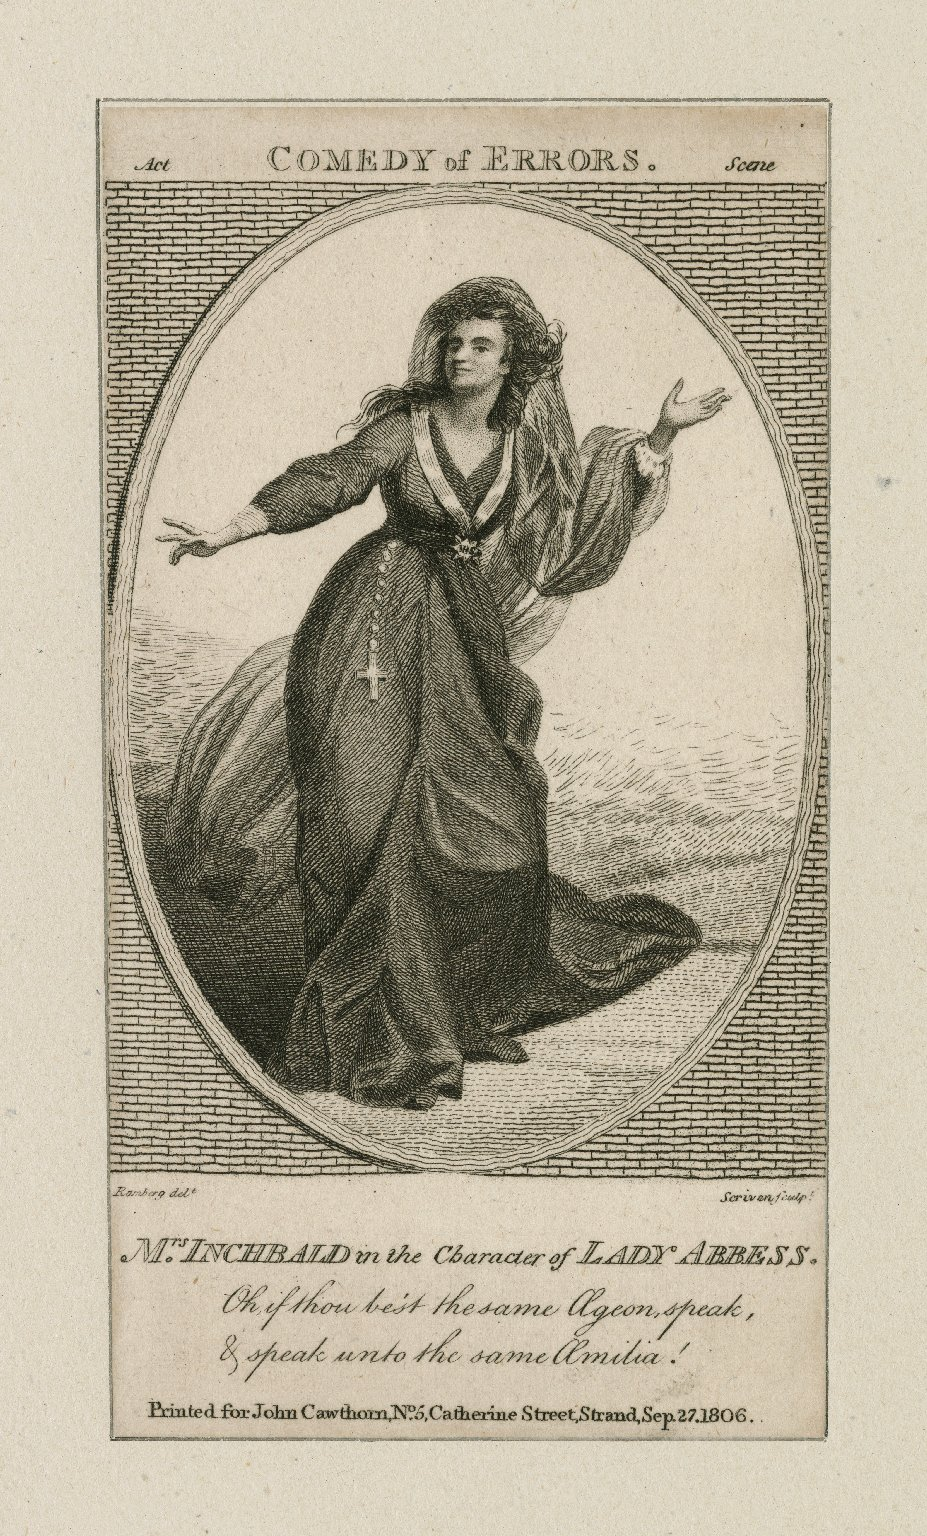 Mrs. Inchbald in the character of Lady abbess [Aemilia in Shakespeare's Comedy of errors] [graphic] / Ramberg delt. ; C. Sherwin sculpt.